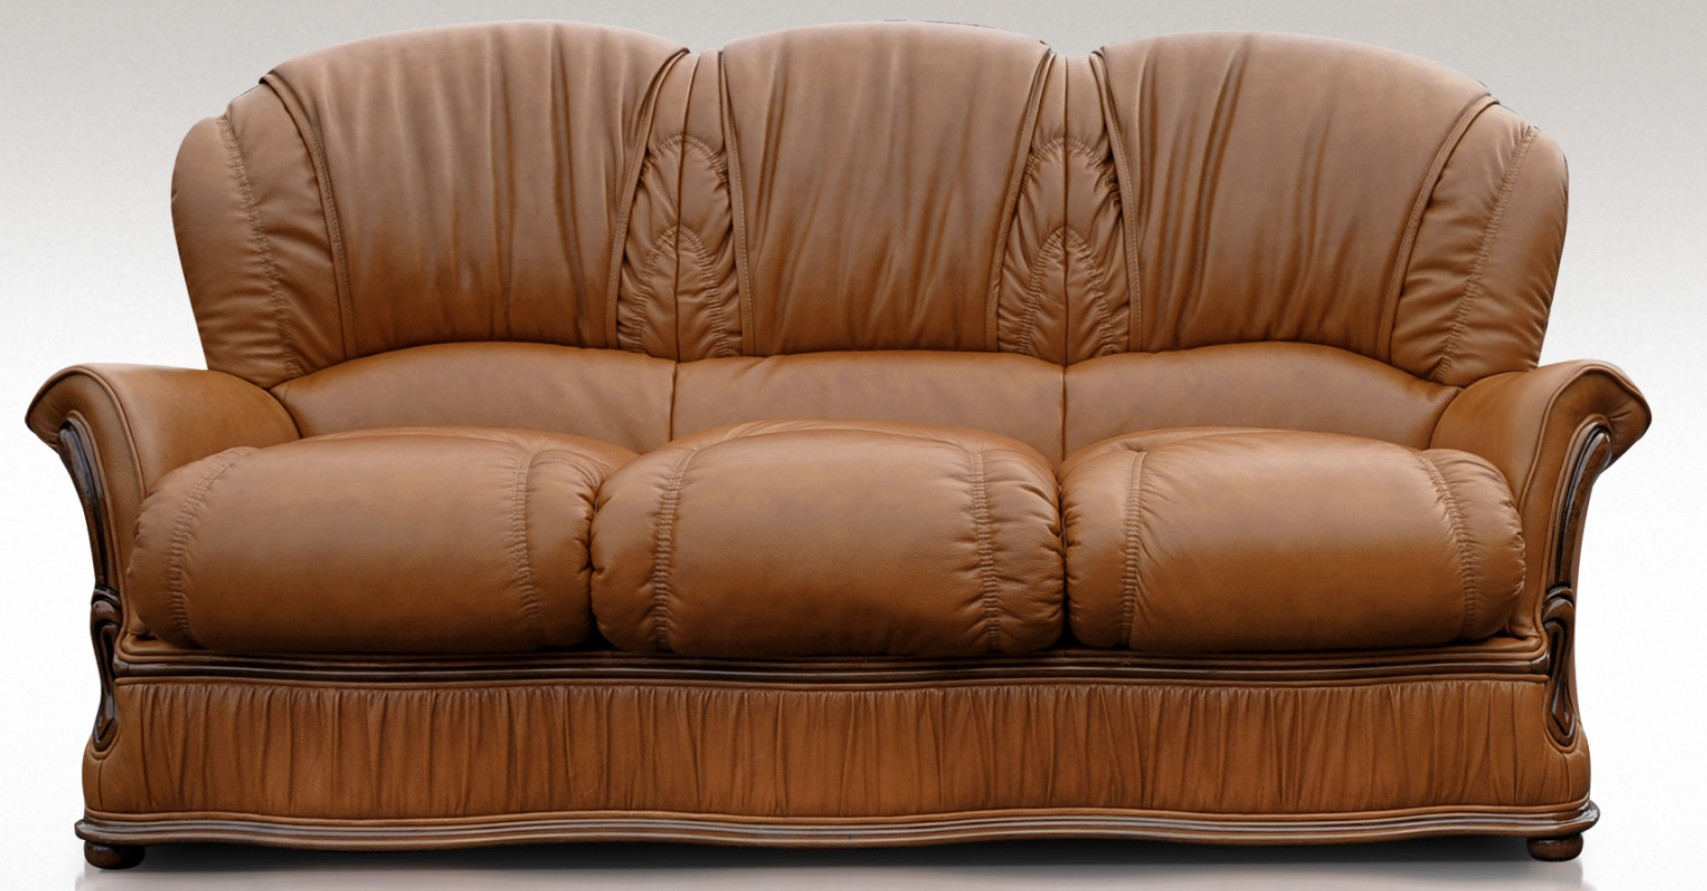 Boris 3 seater italian tan leather Italian leather sofa uk